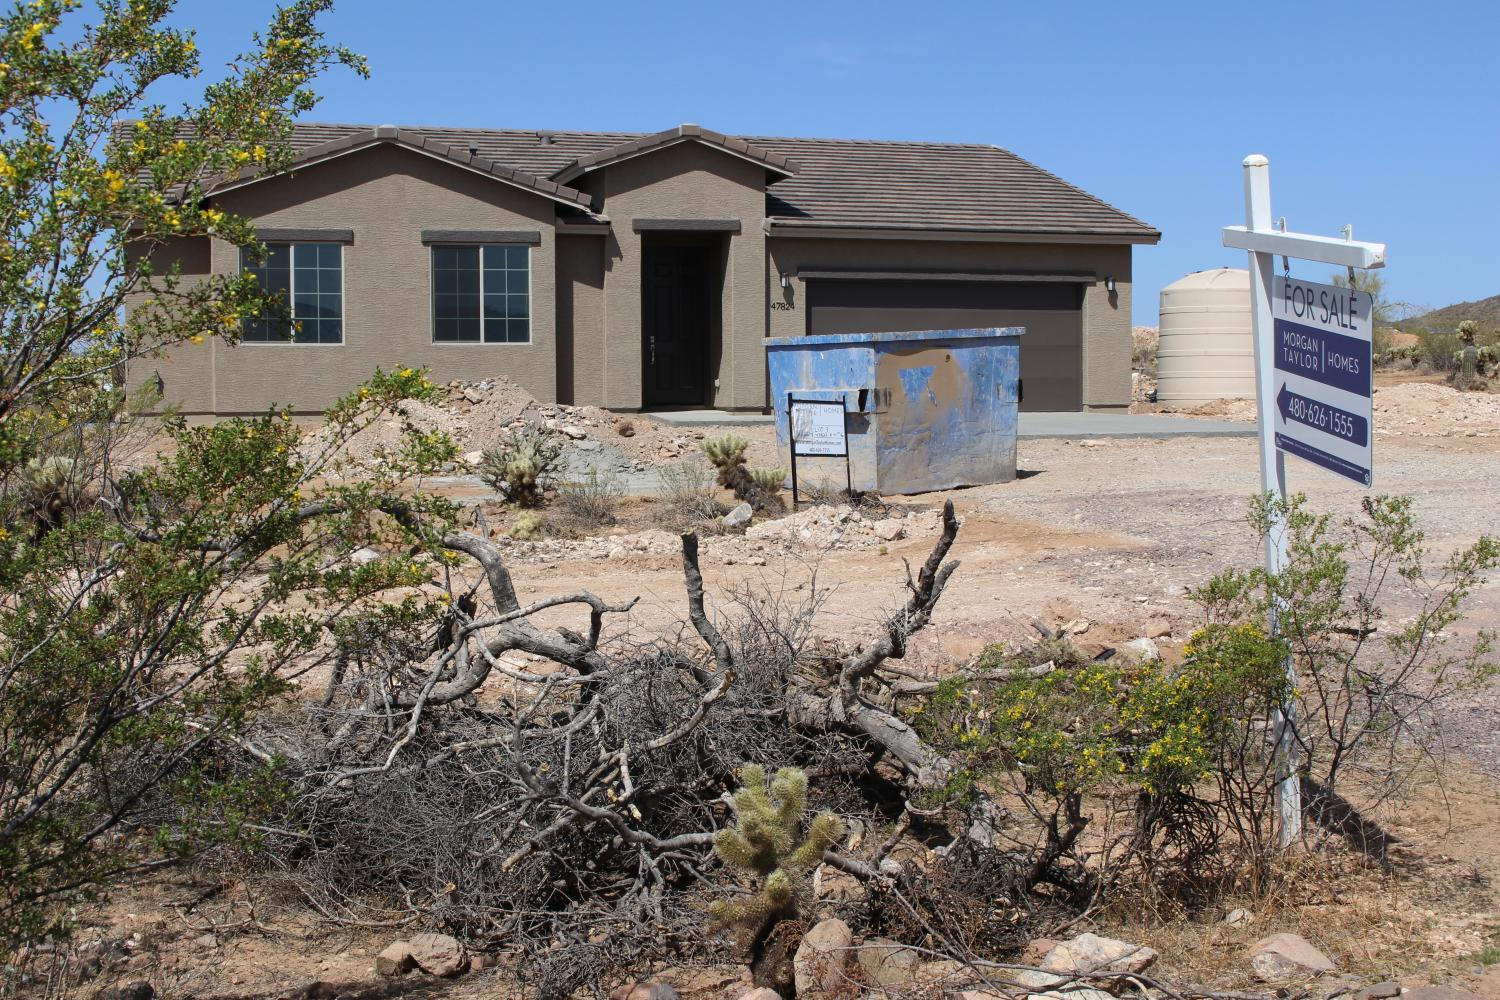 Neighbors of the new homes have been pushing Maricopa County and Arizona state officials to look into possible attempts to avoid subdivision rules. New River, April, 2018.